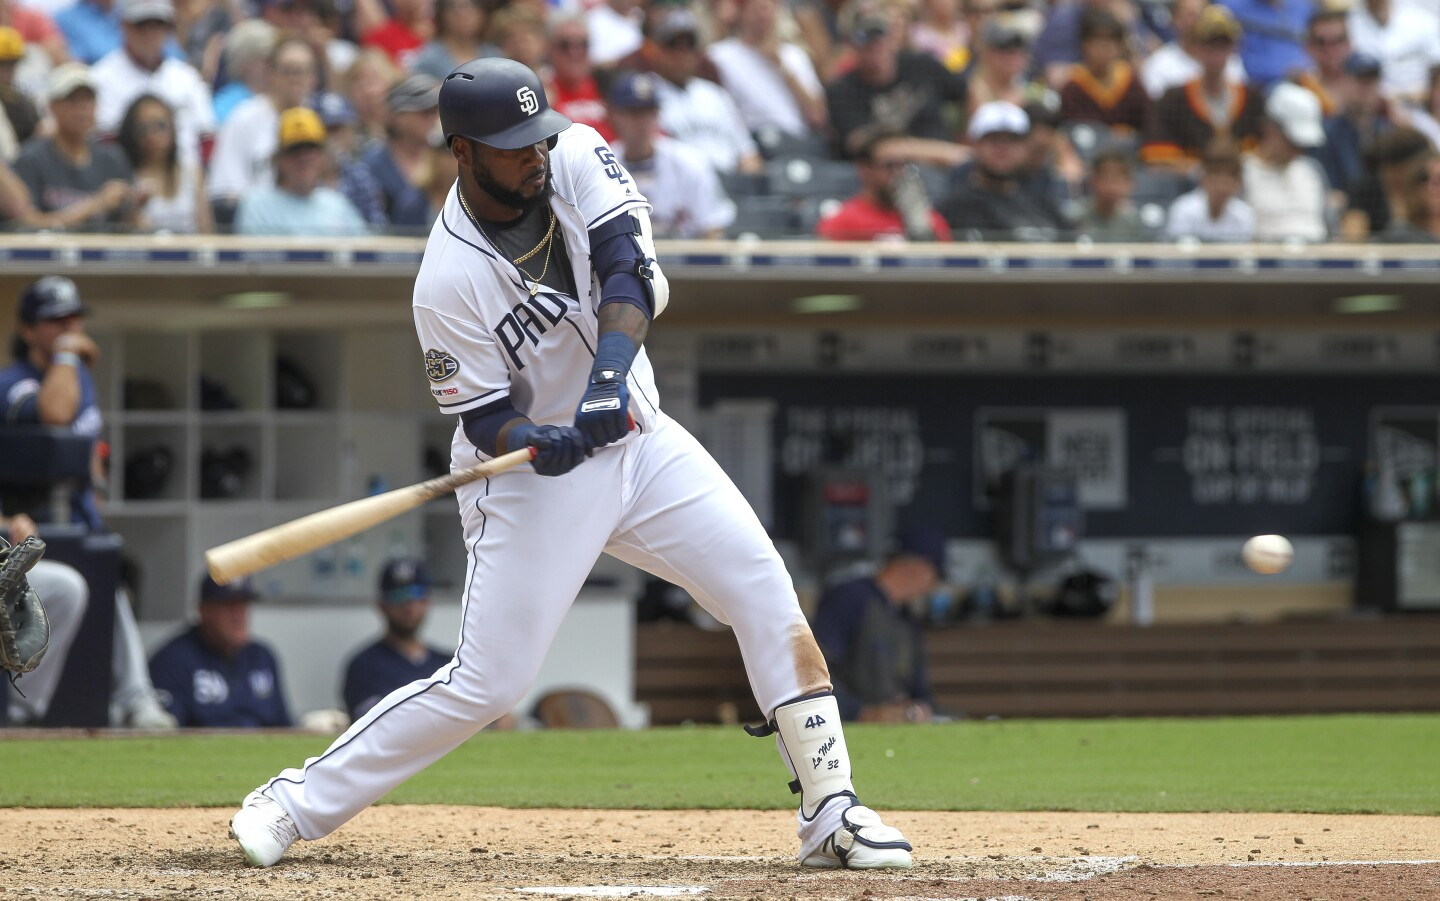 Padres vs. Brewers 06/19/19